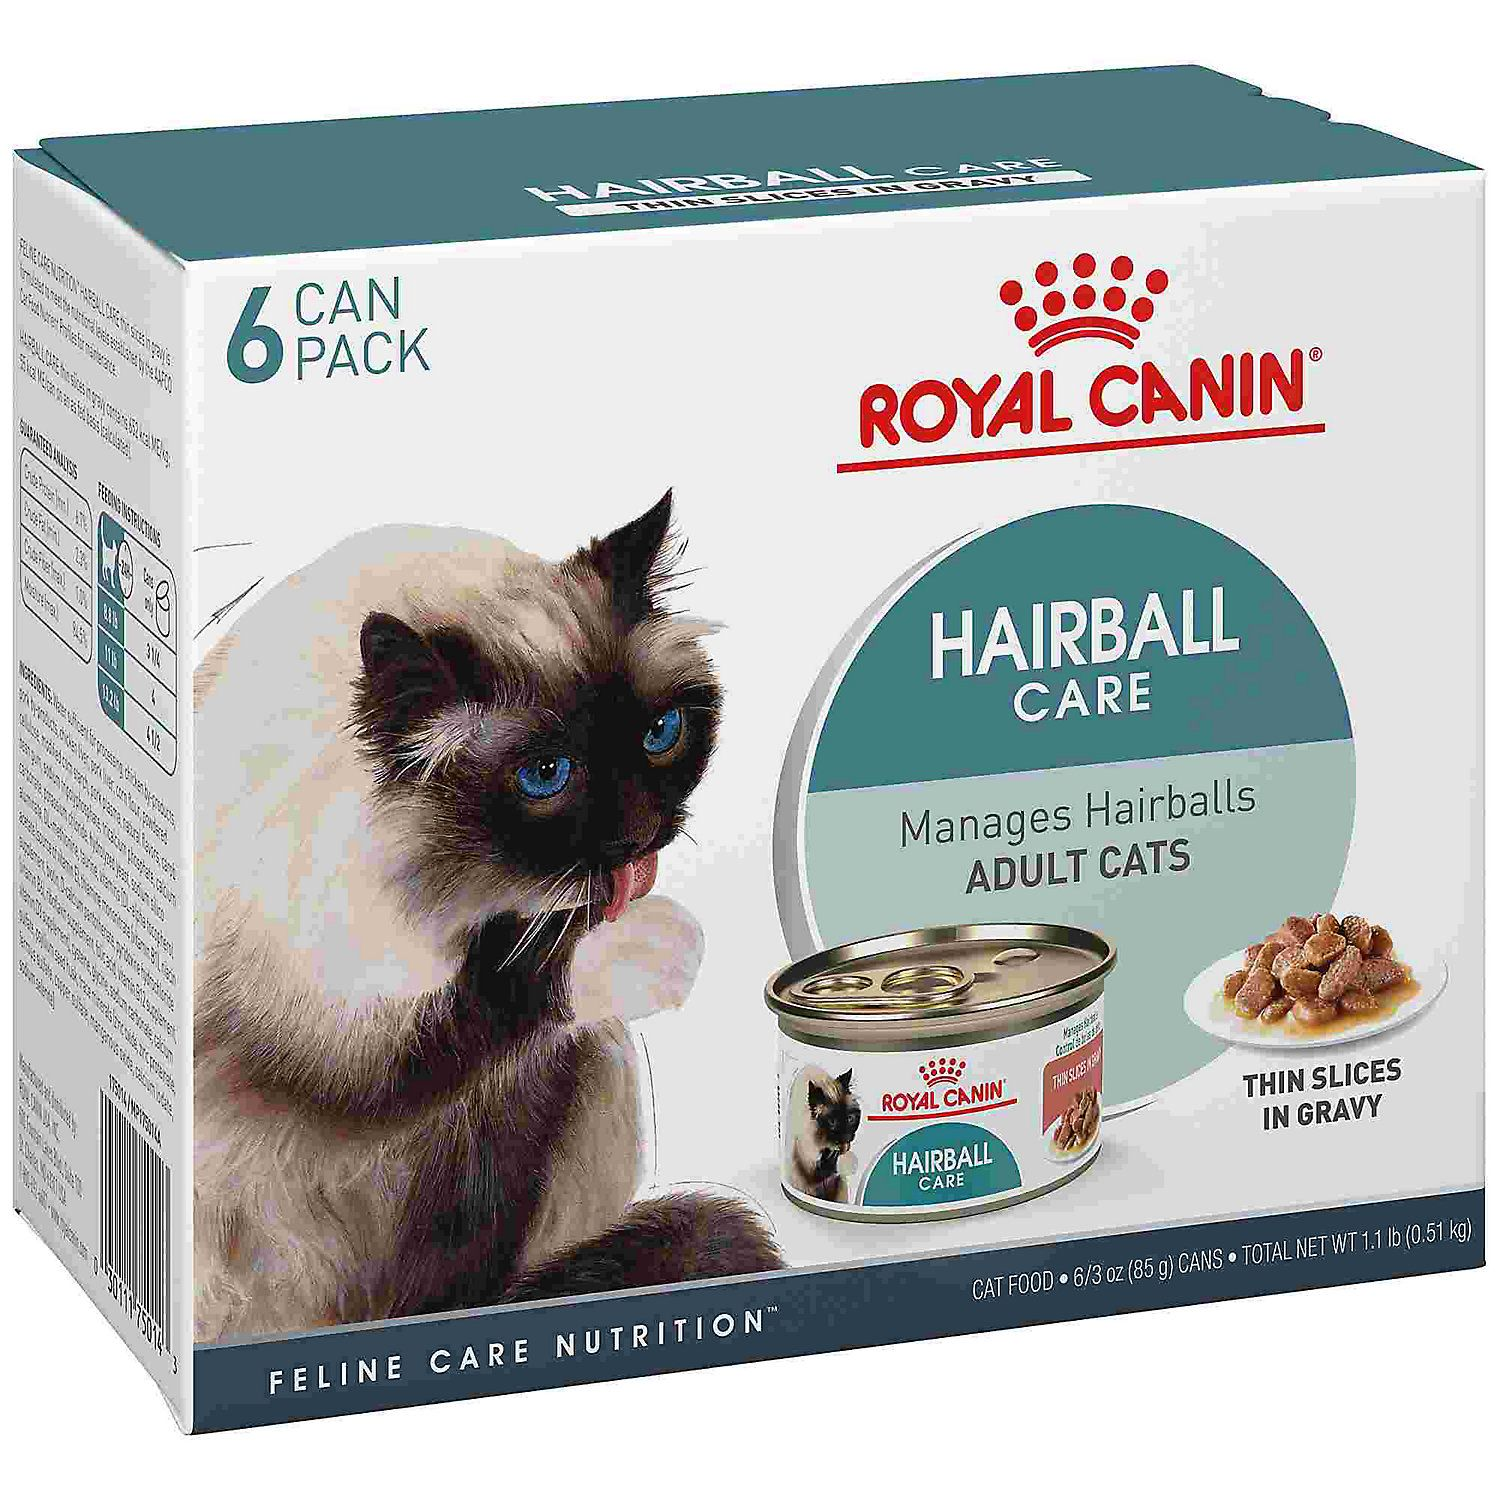 Royal Canin Hairball Care Thin Slices In Gravy Wet Cat Food Multipack 3 Oz Count Of 6 Cat Food Dry Cat Food